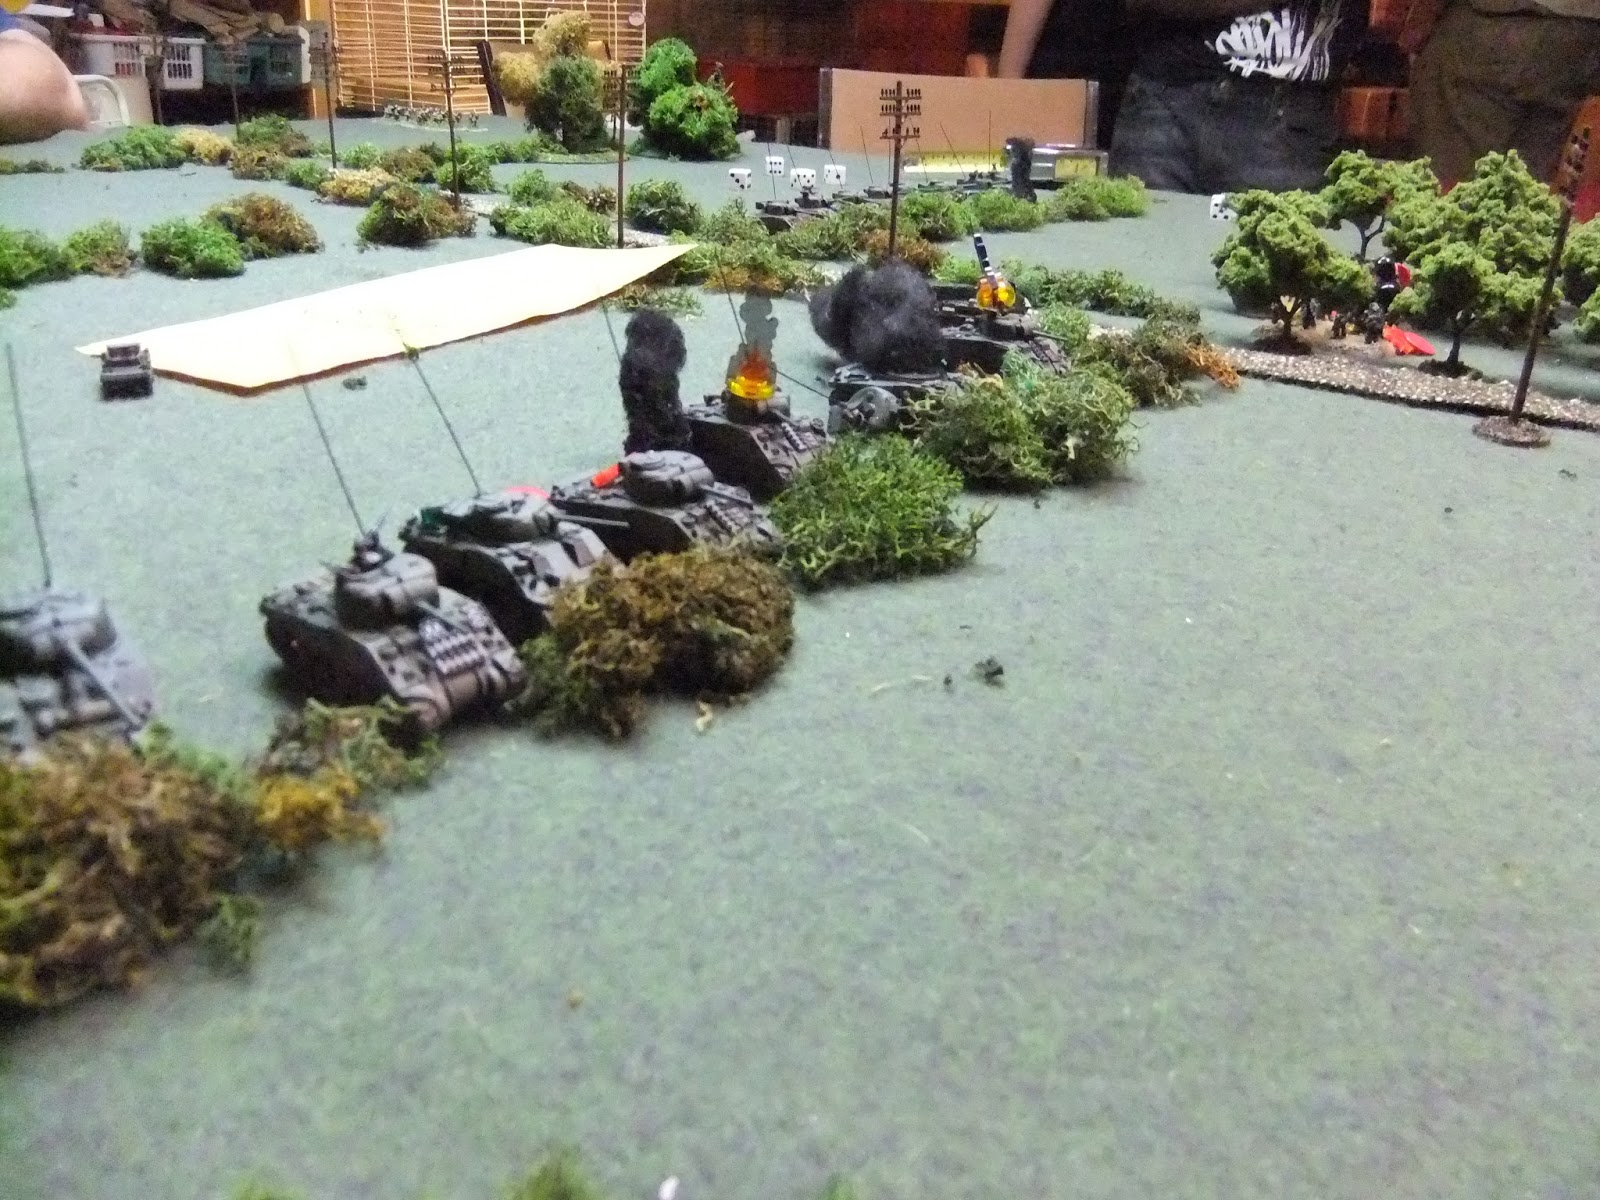 The Squadron CO's tank was the first to go in a catastrophic fireball, killing the Old Man.